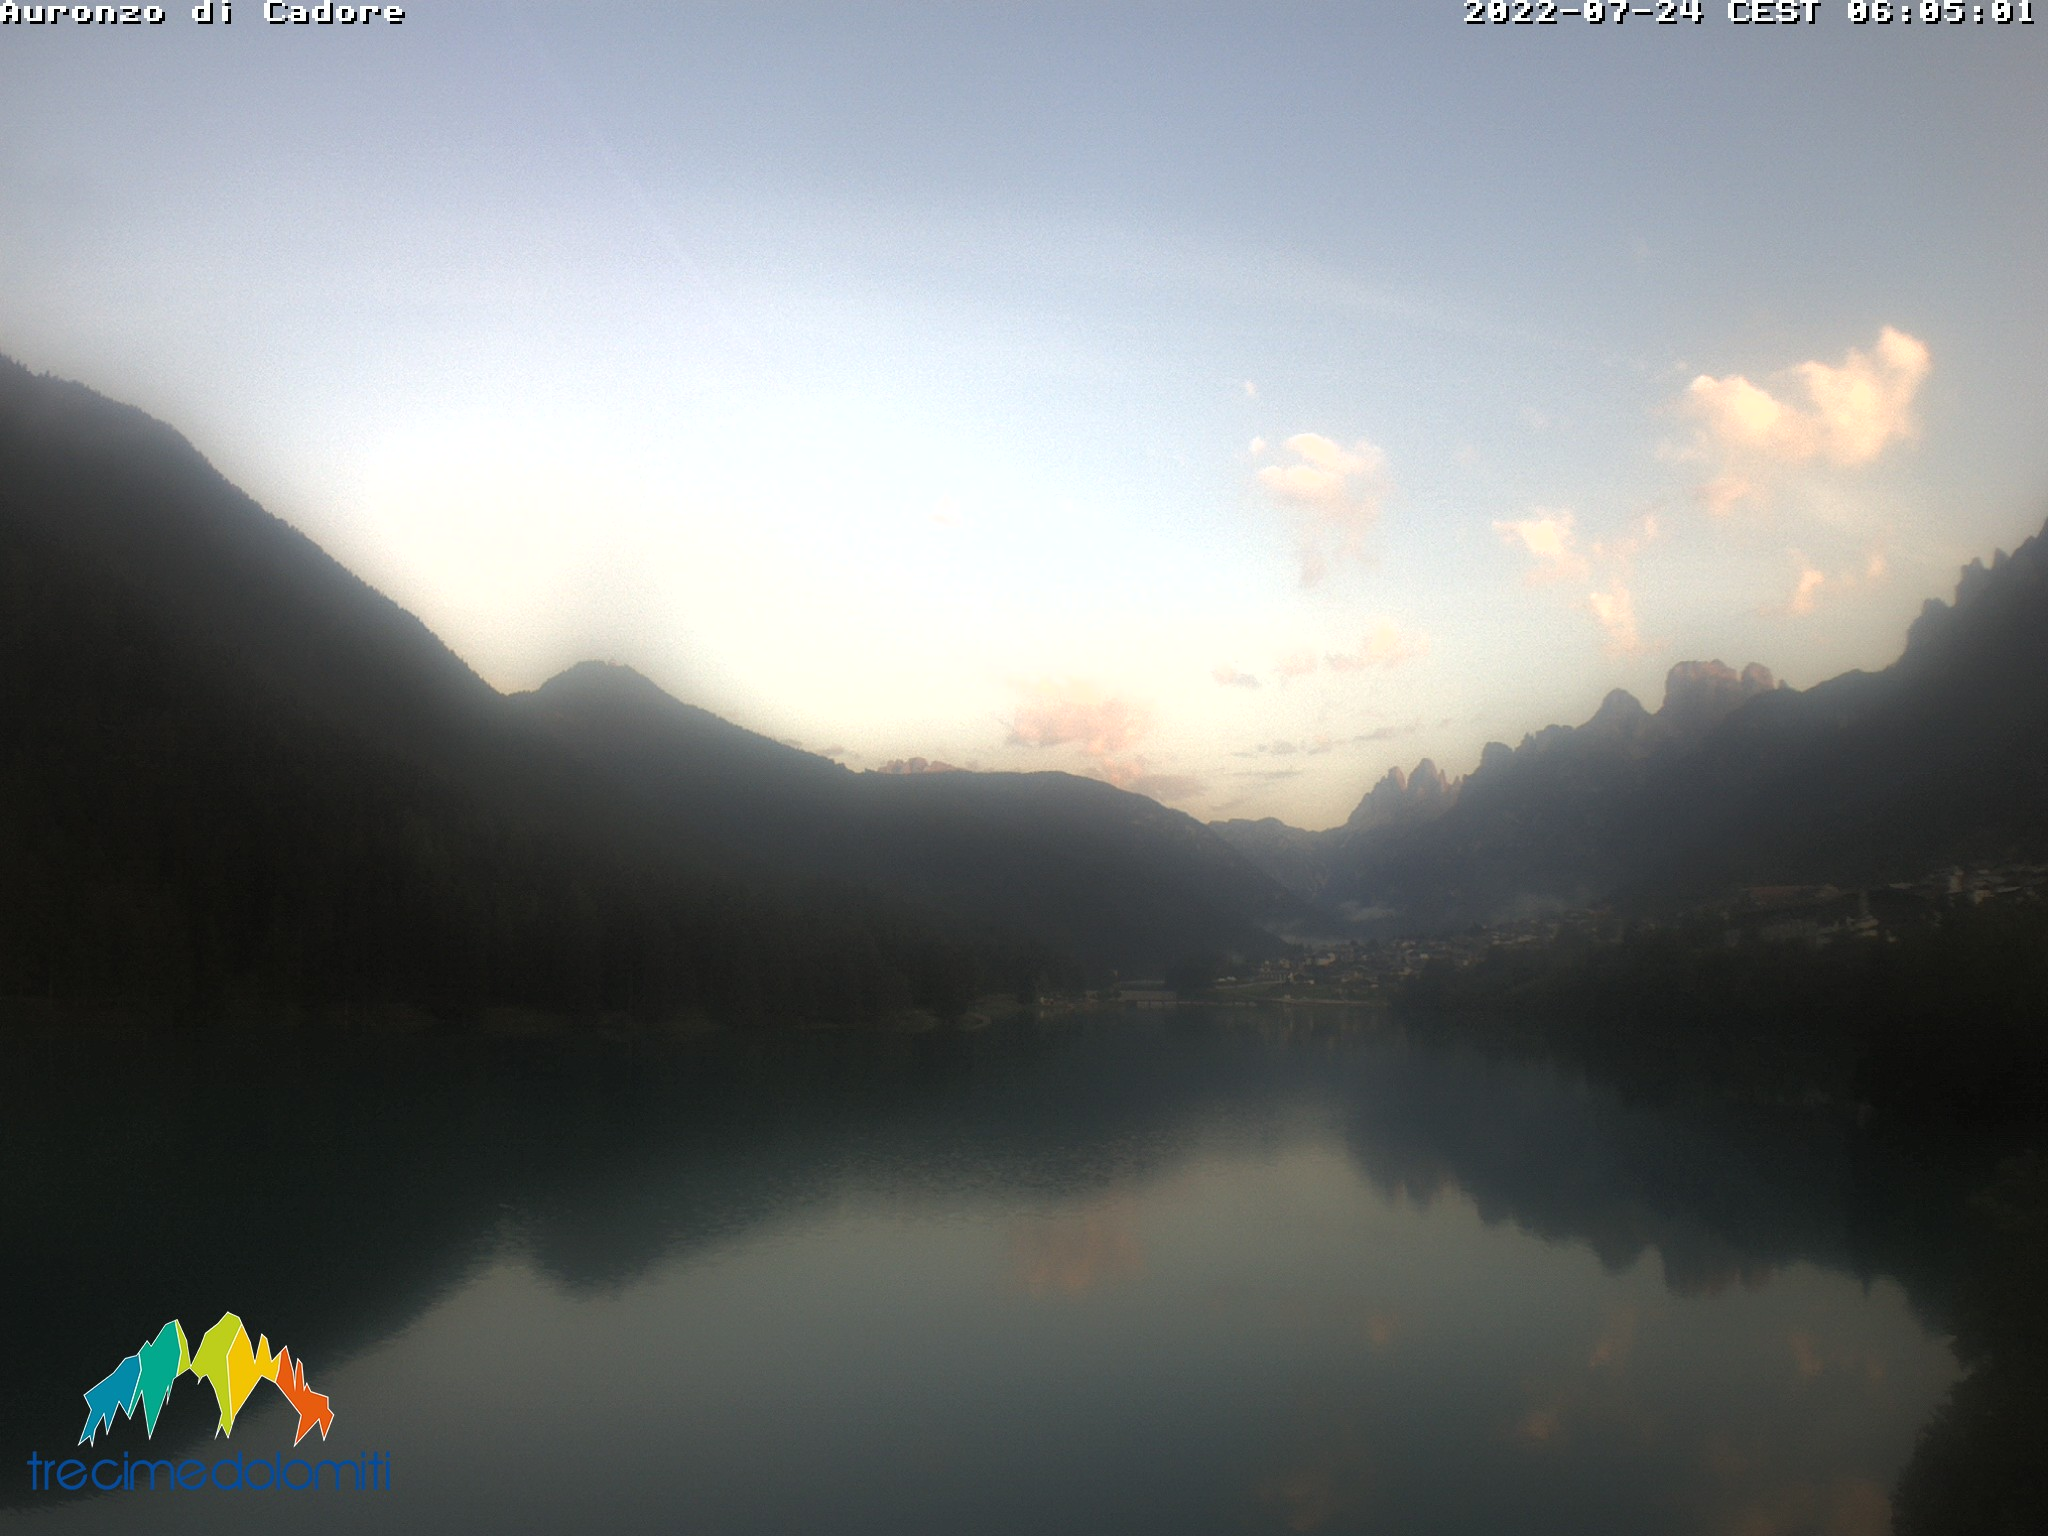 Webcam Auronzo Di Cadore